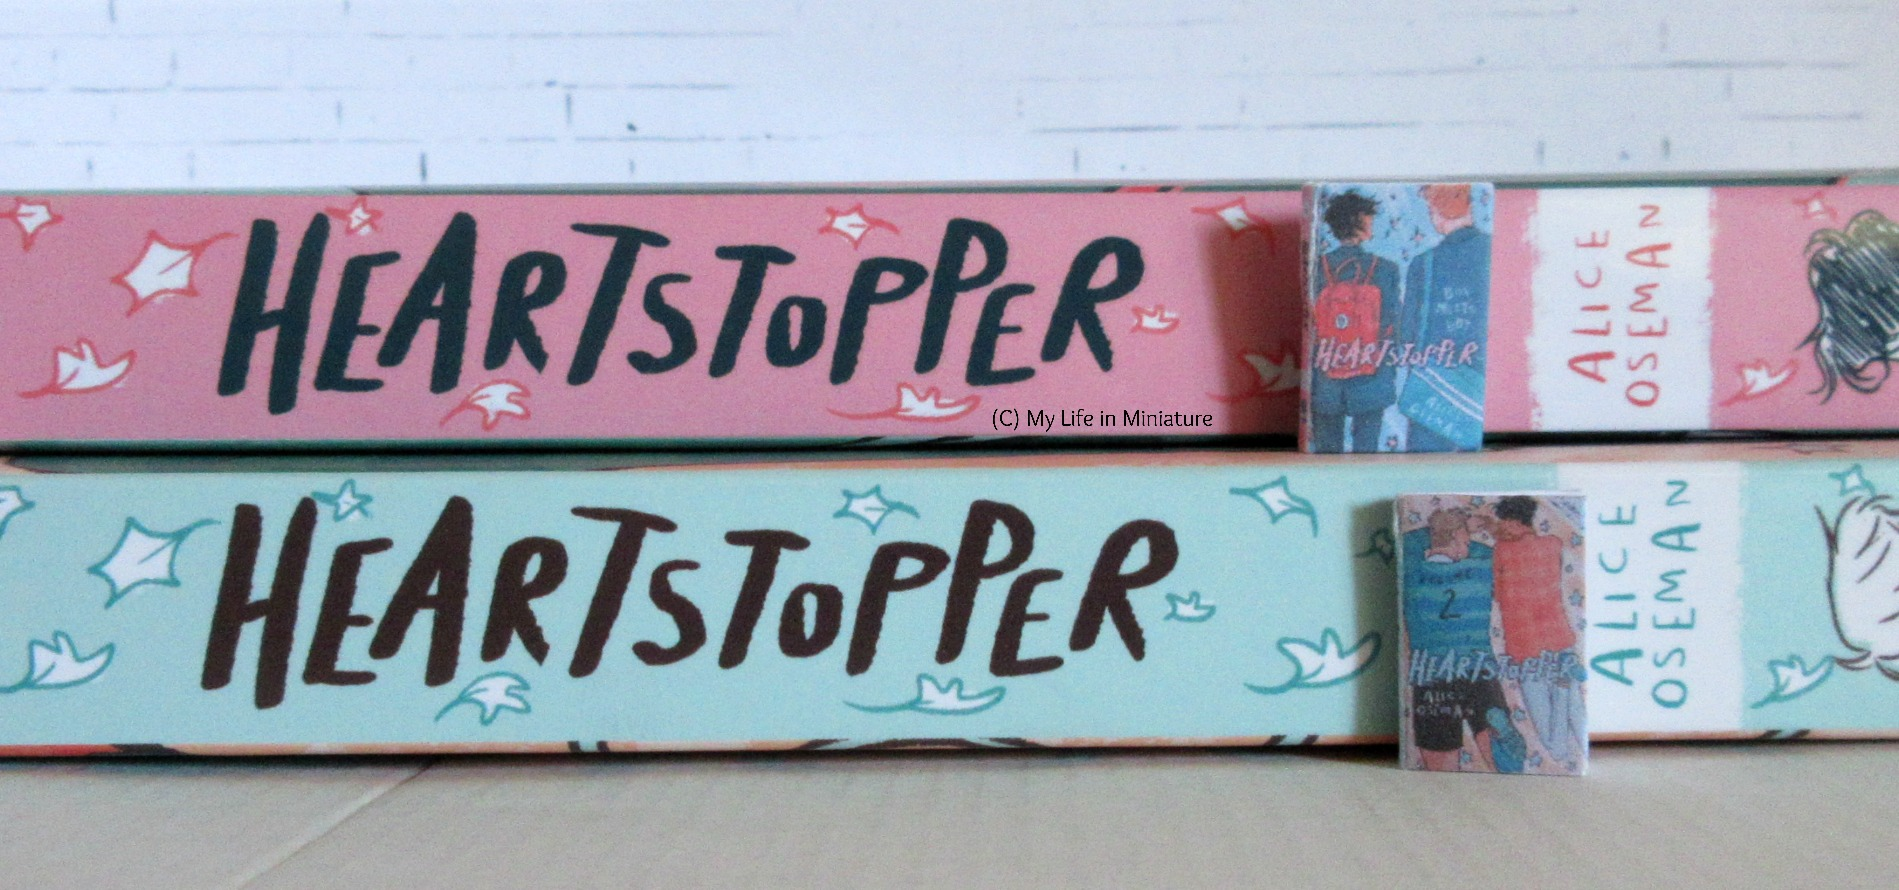 The two life-size Heartstopper volumes are stacked, spines facing the camera. The corresponding miniature version sits next to their matching life-size spines.